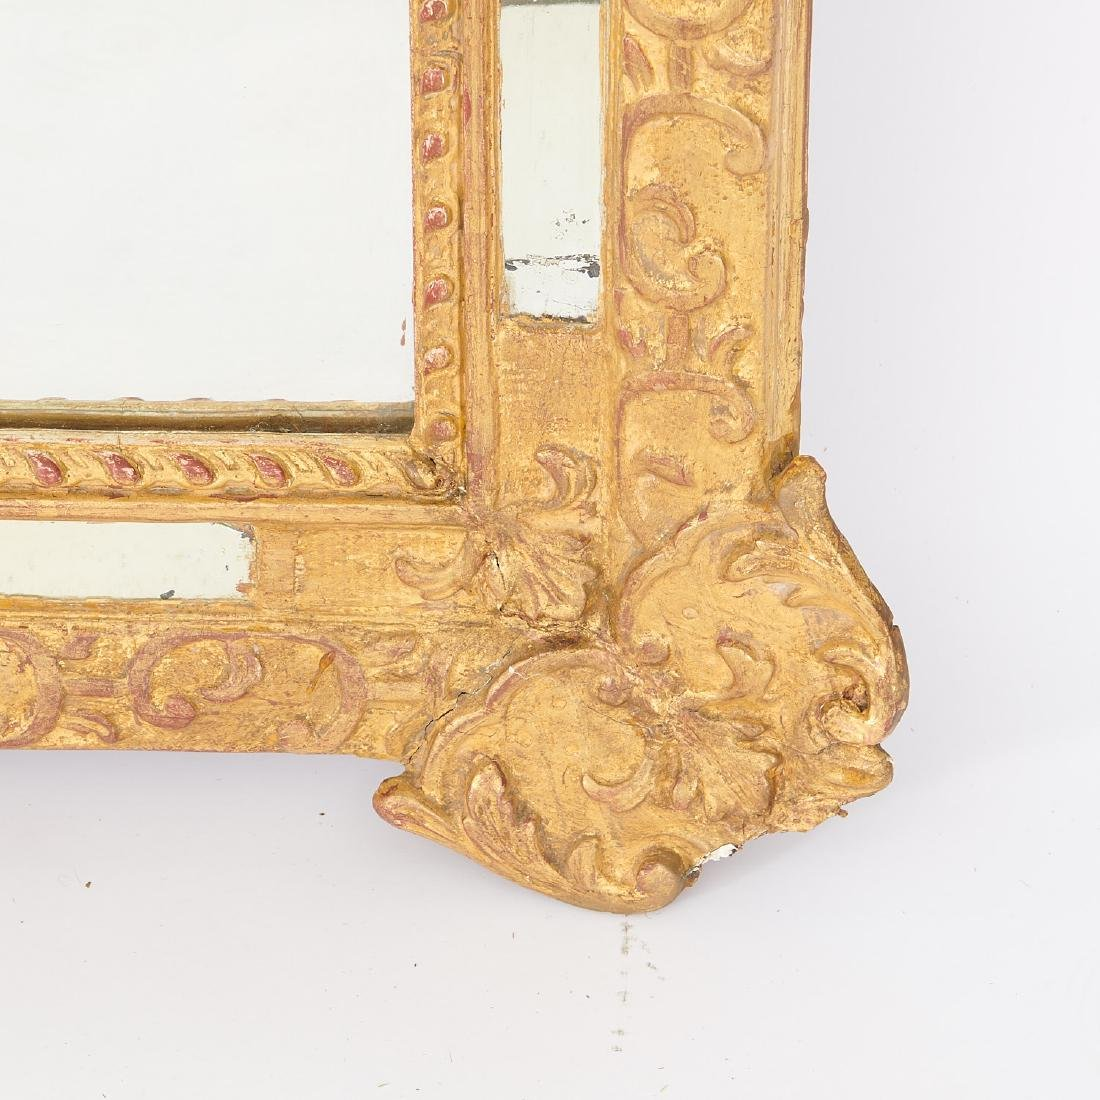 Old Regence style giltwood pier mirror - 7